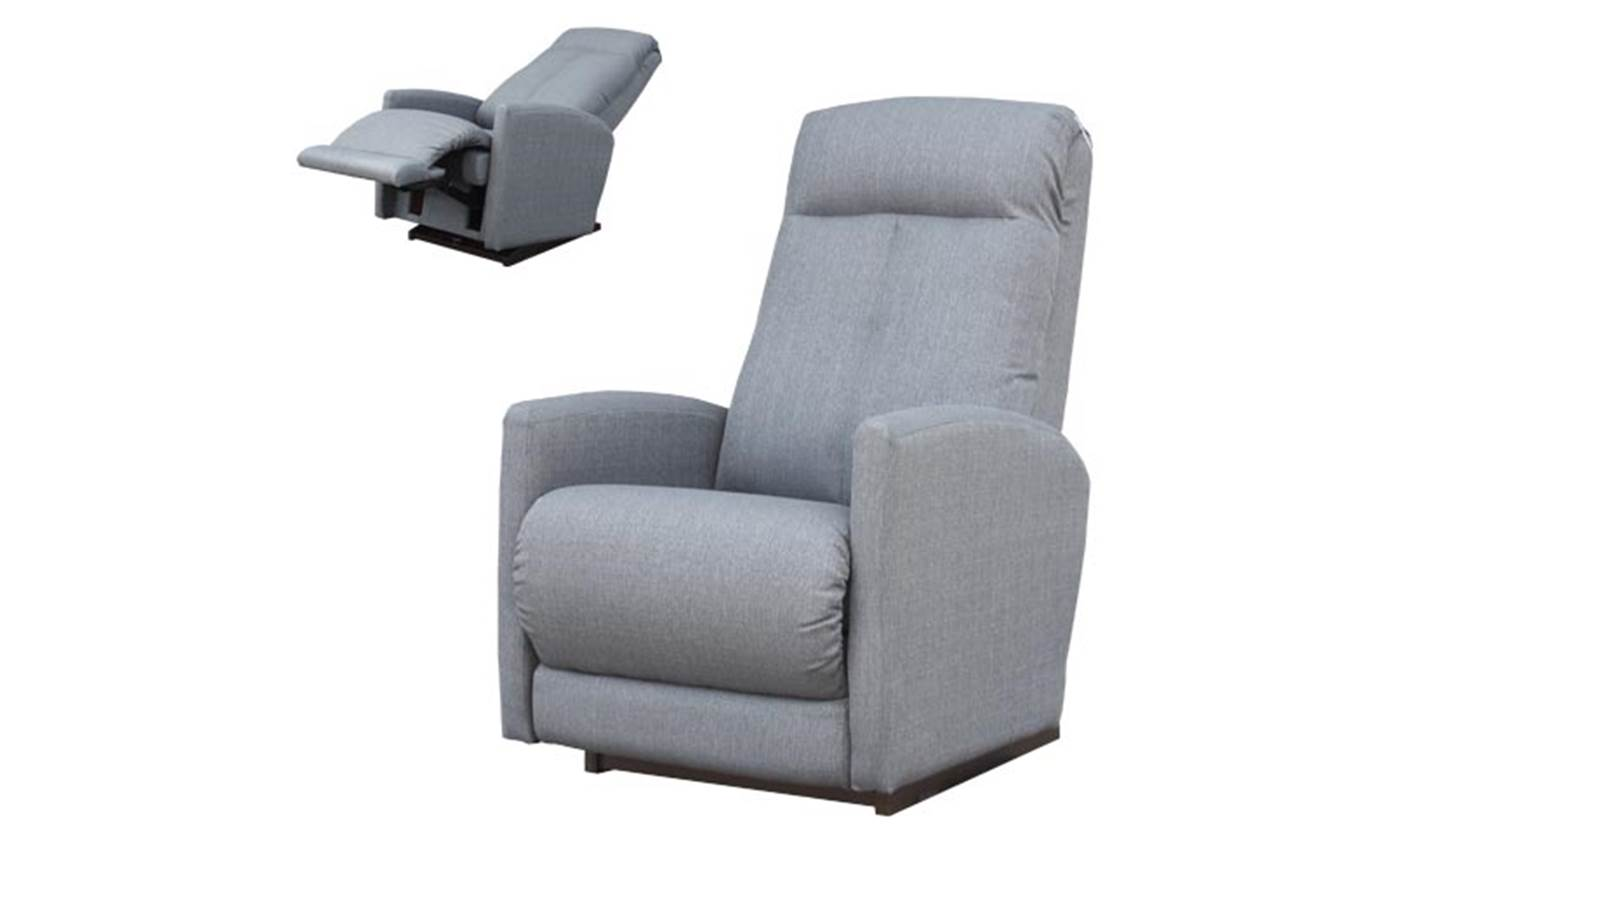 leather recliner chairs harvey norman inexpensive for living room la z boy keen fabric rocker malaysia